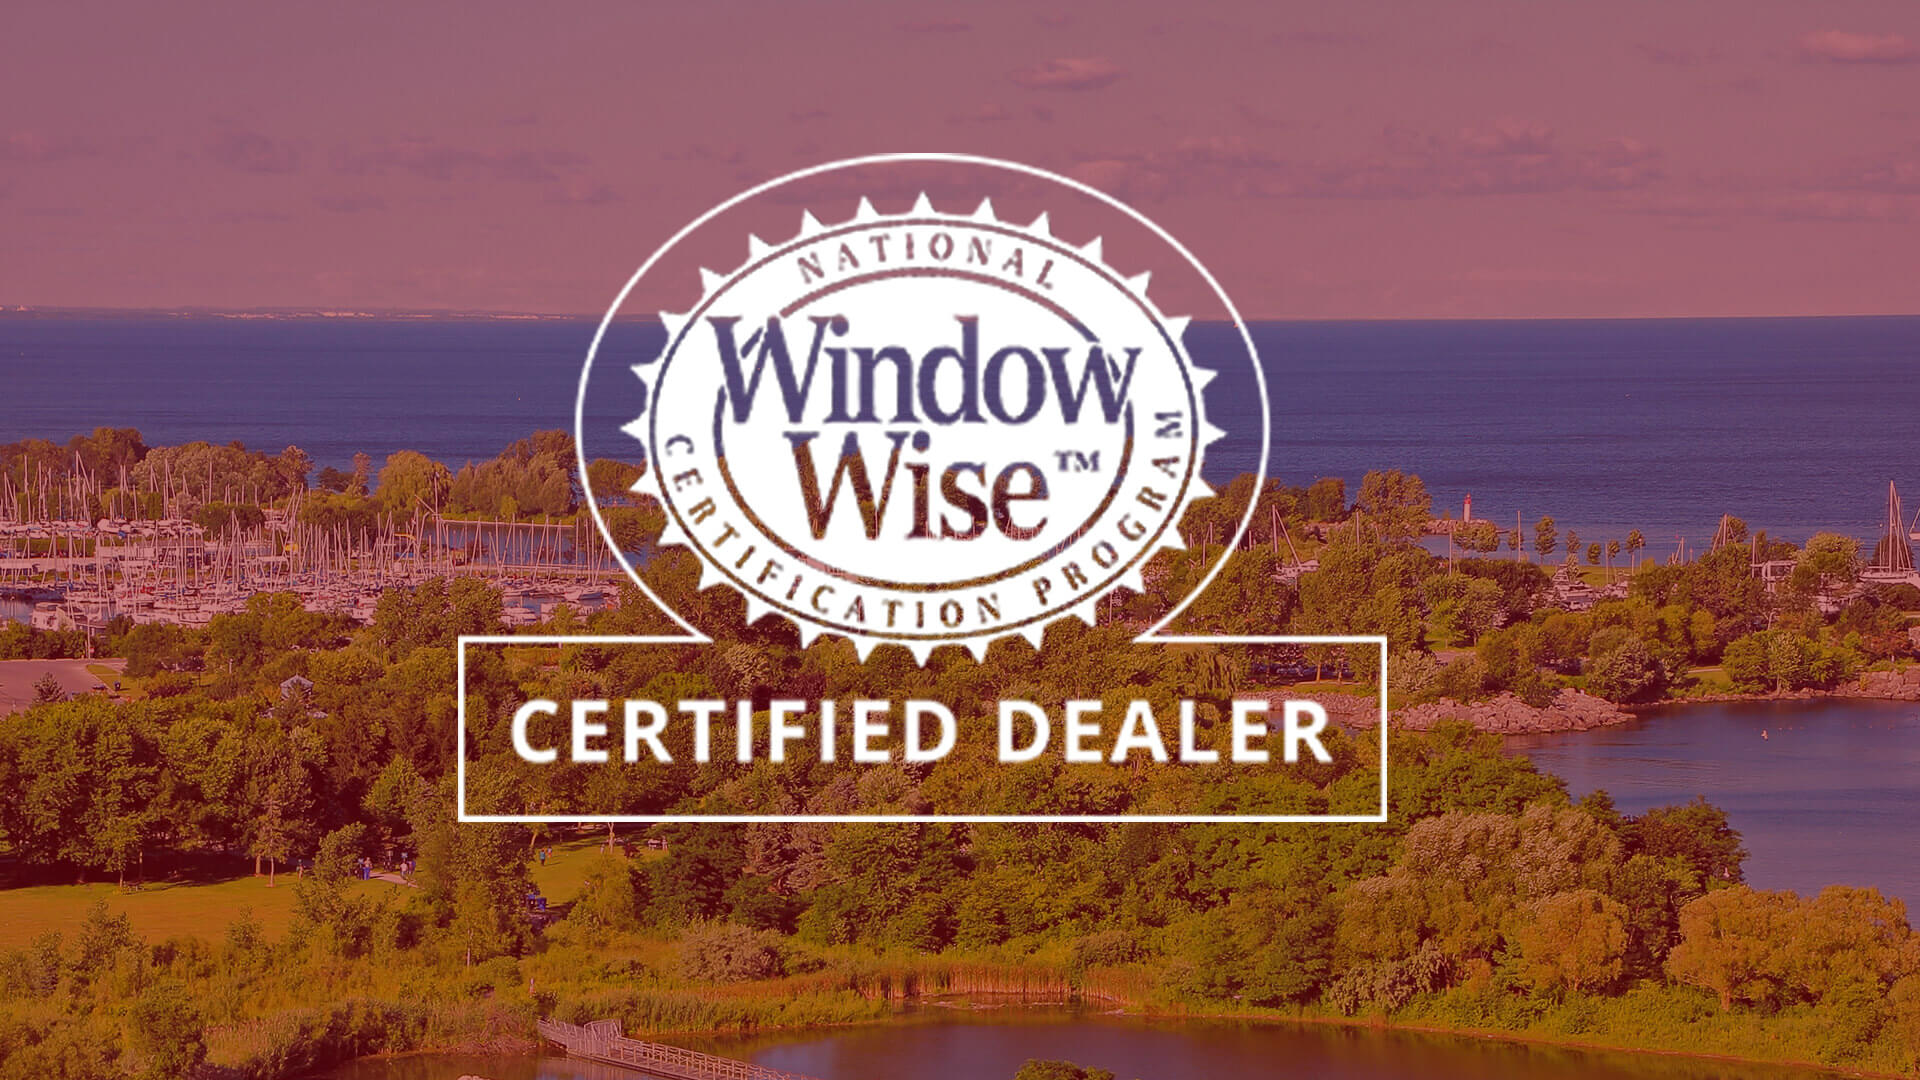 Window Wise Logo Overlayed on an image of a house with high efficiency windows.